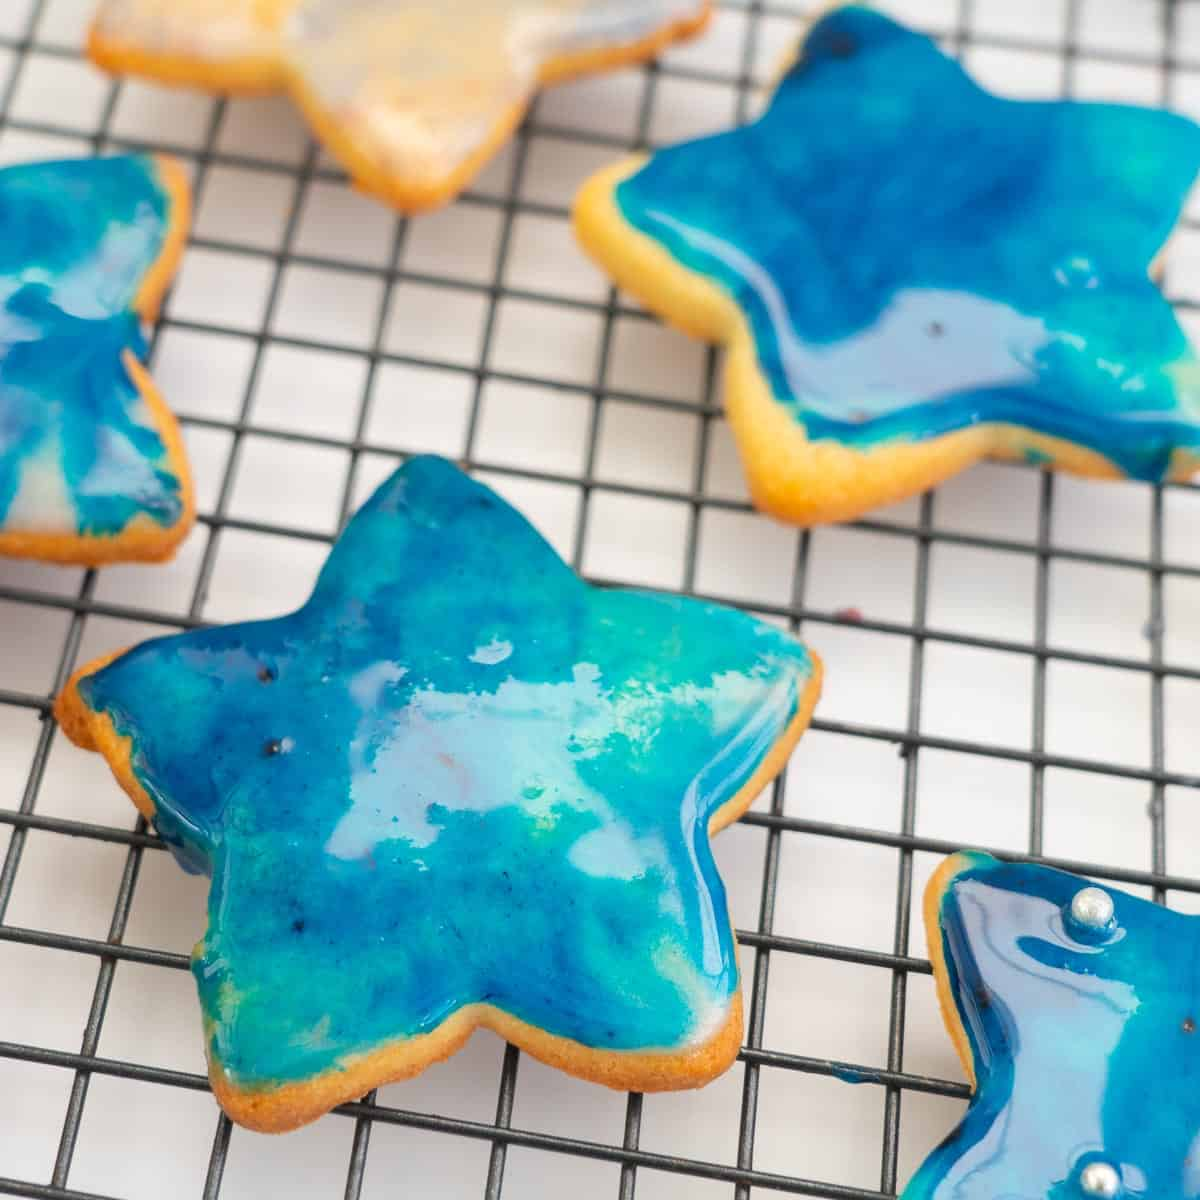 Blue galaxy iced cookies on a cooling rack.